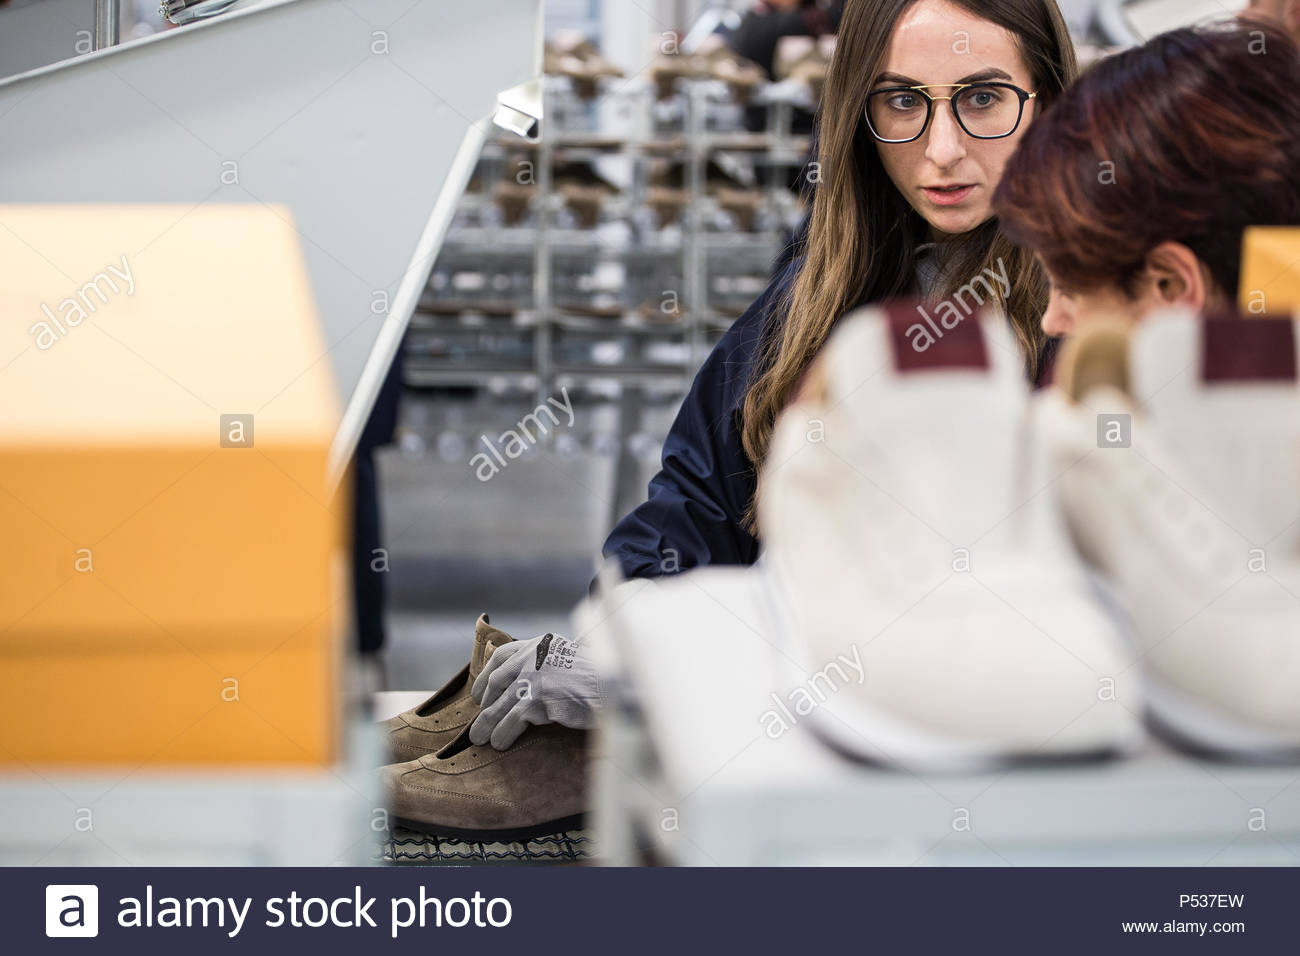 Tod's opening to Arquata del Tronto (AP) - 20th December 2017 | workers during the production of shoes. - Stock Image